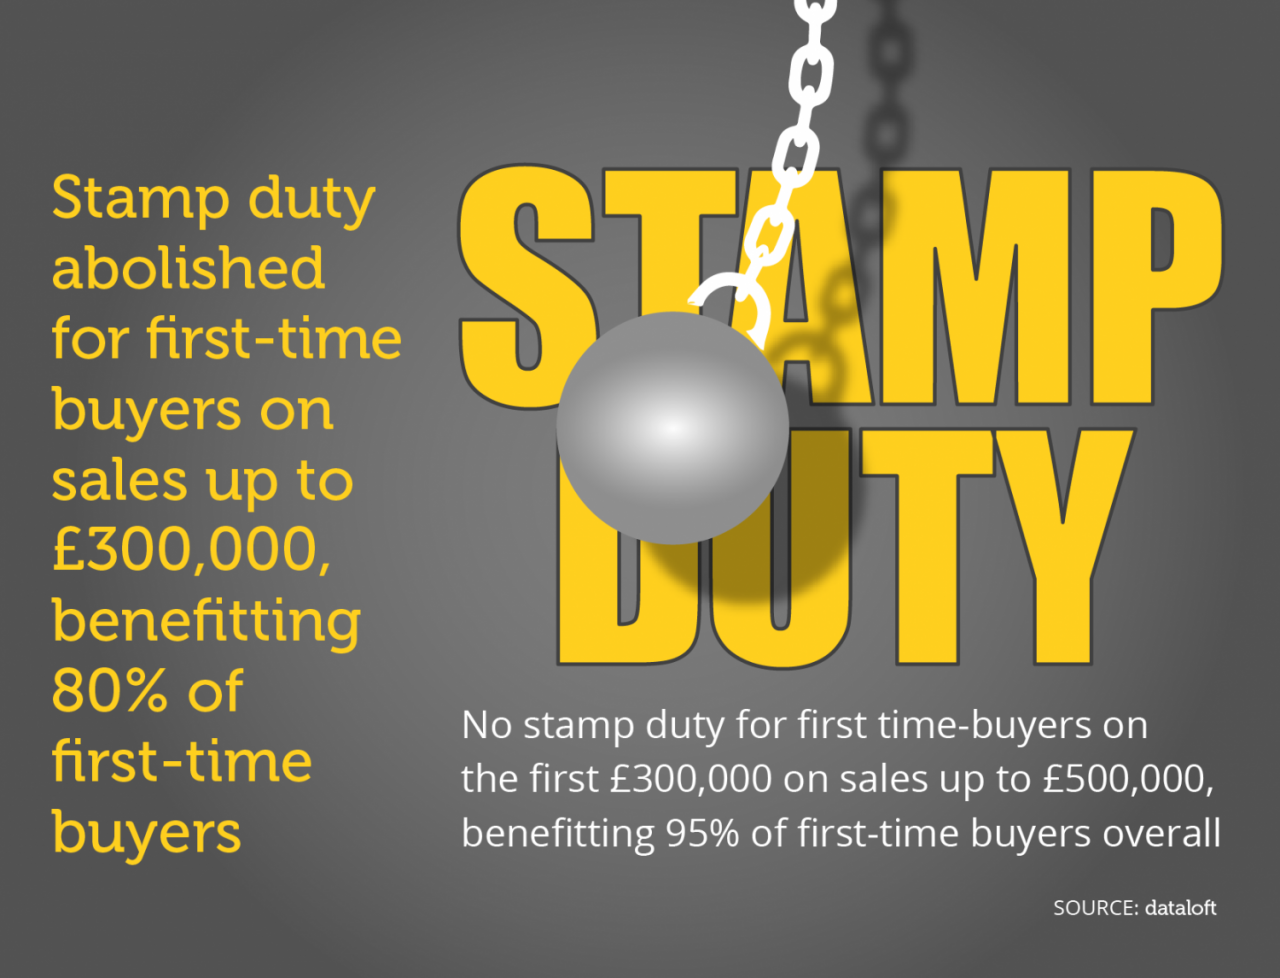 THE BUDGET ON STAMP DUTY